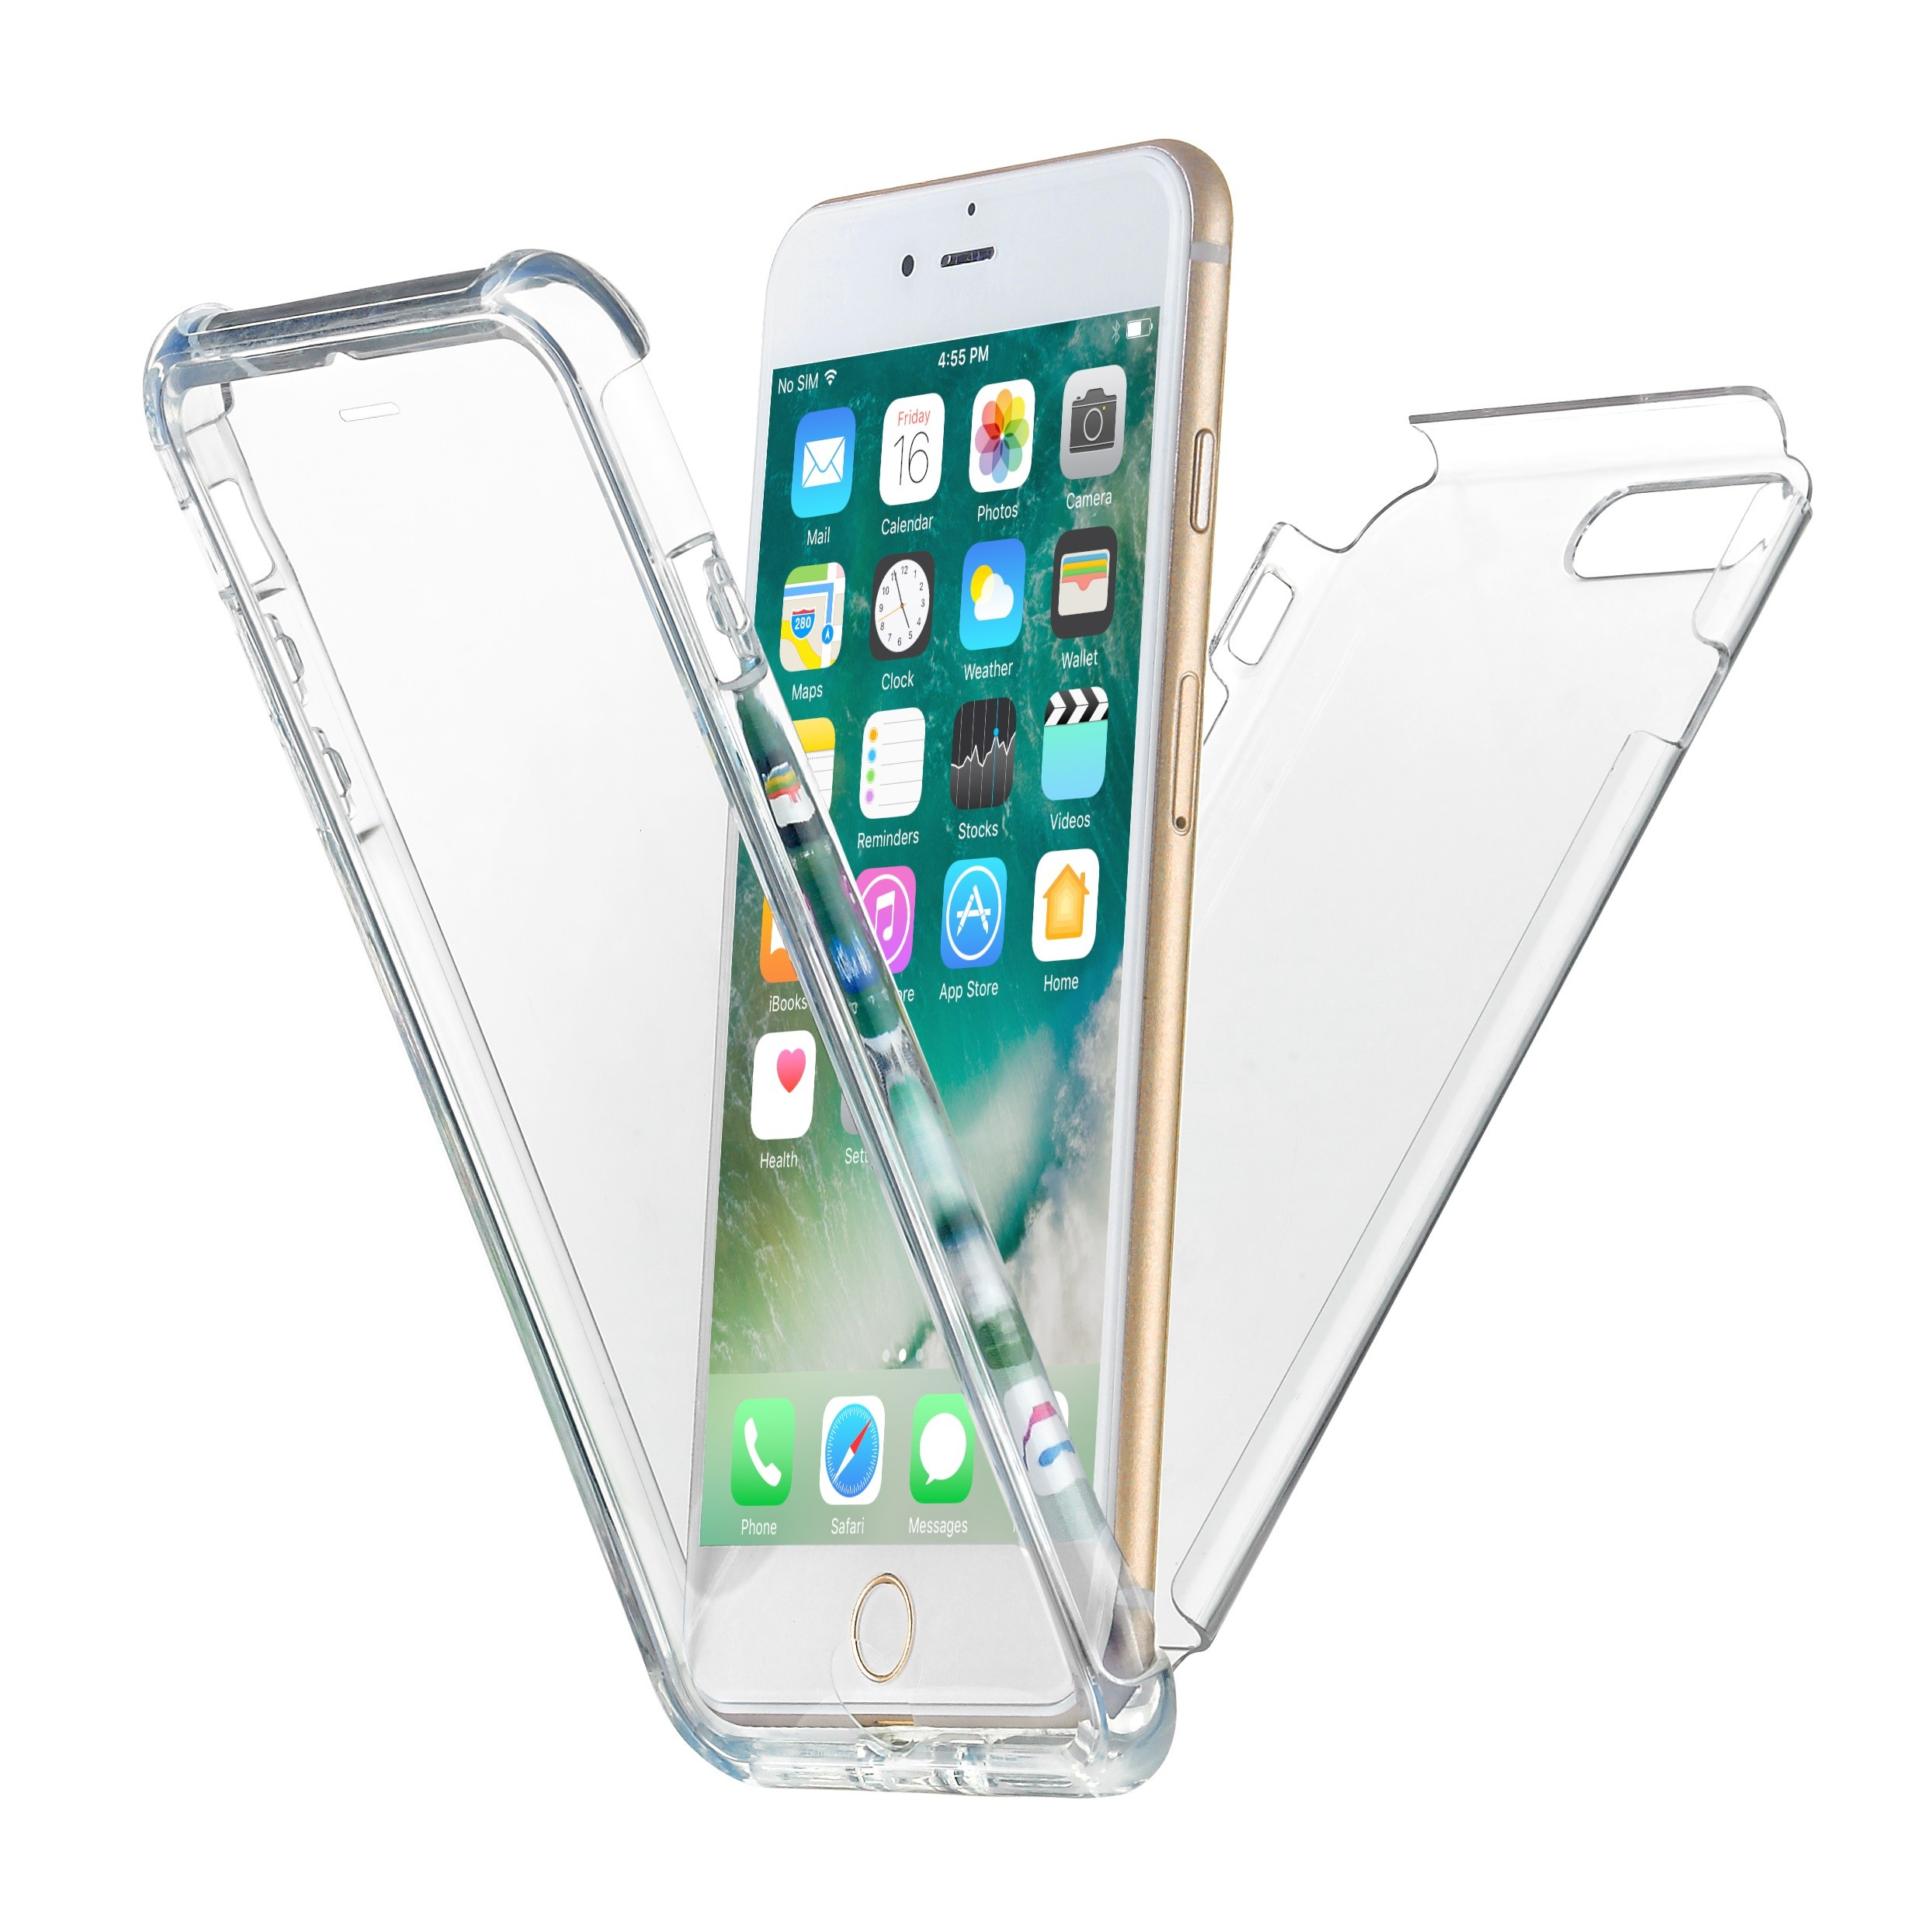 iPhone 7 Plus Case, iPhone 8 Plus Case, New Trent eSobala 7P Light Weight Clear Transparent Case with Bumper Protection, Built-in Screen Protector for Apple iPhone 7 Plus & iPhone 8 Plus (5.5-Inch)